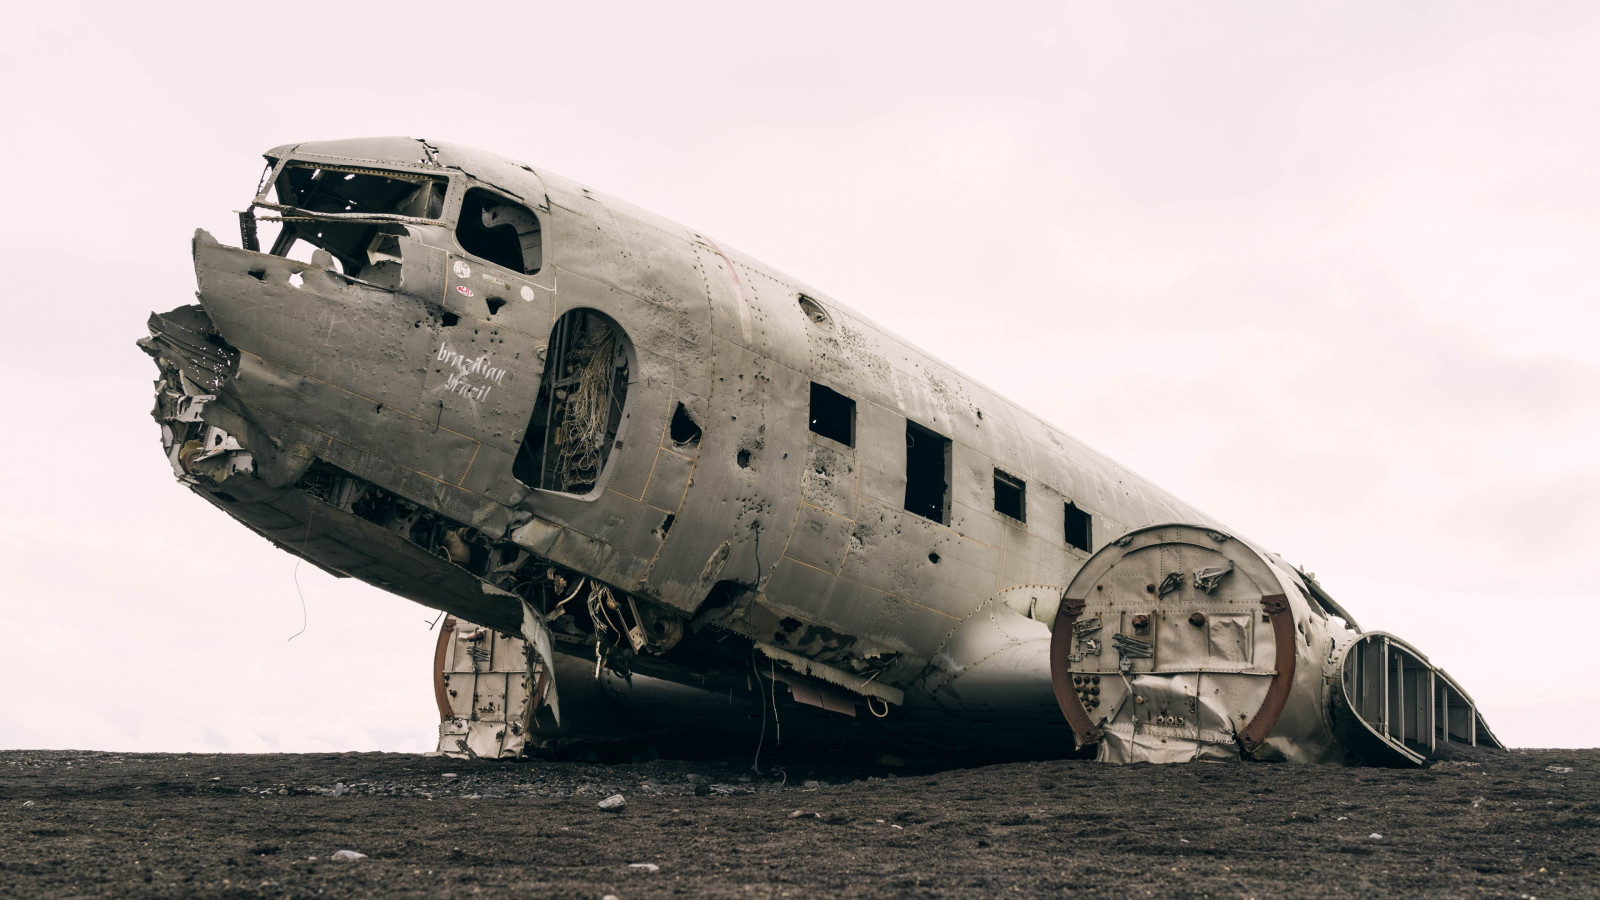 Wrecked airplane wallpaper 1600x900